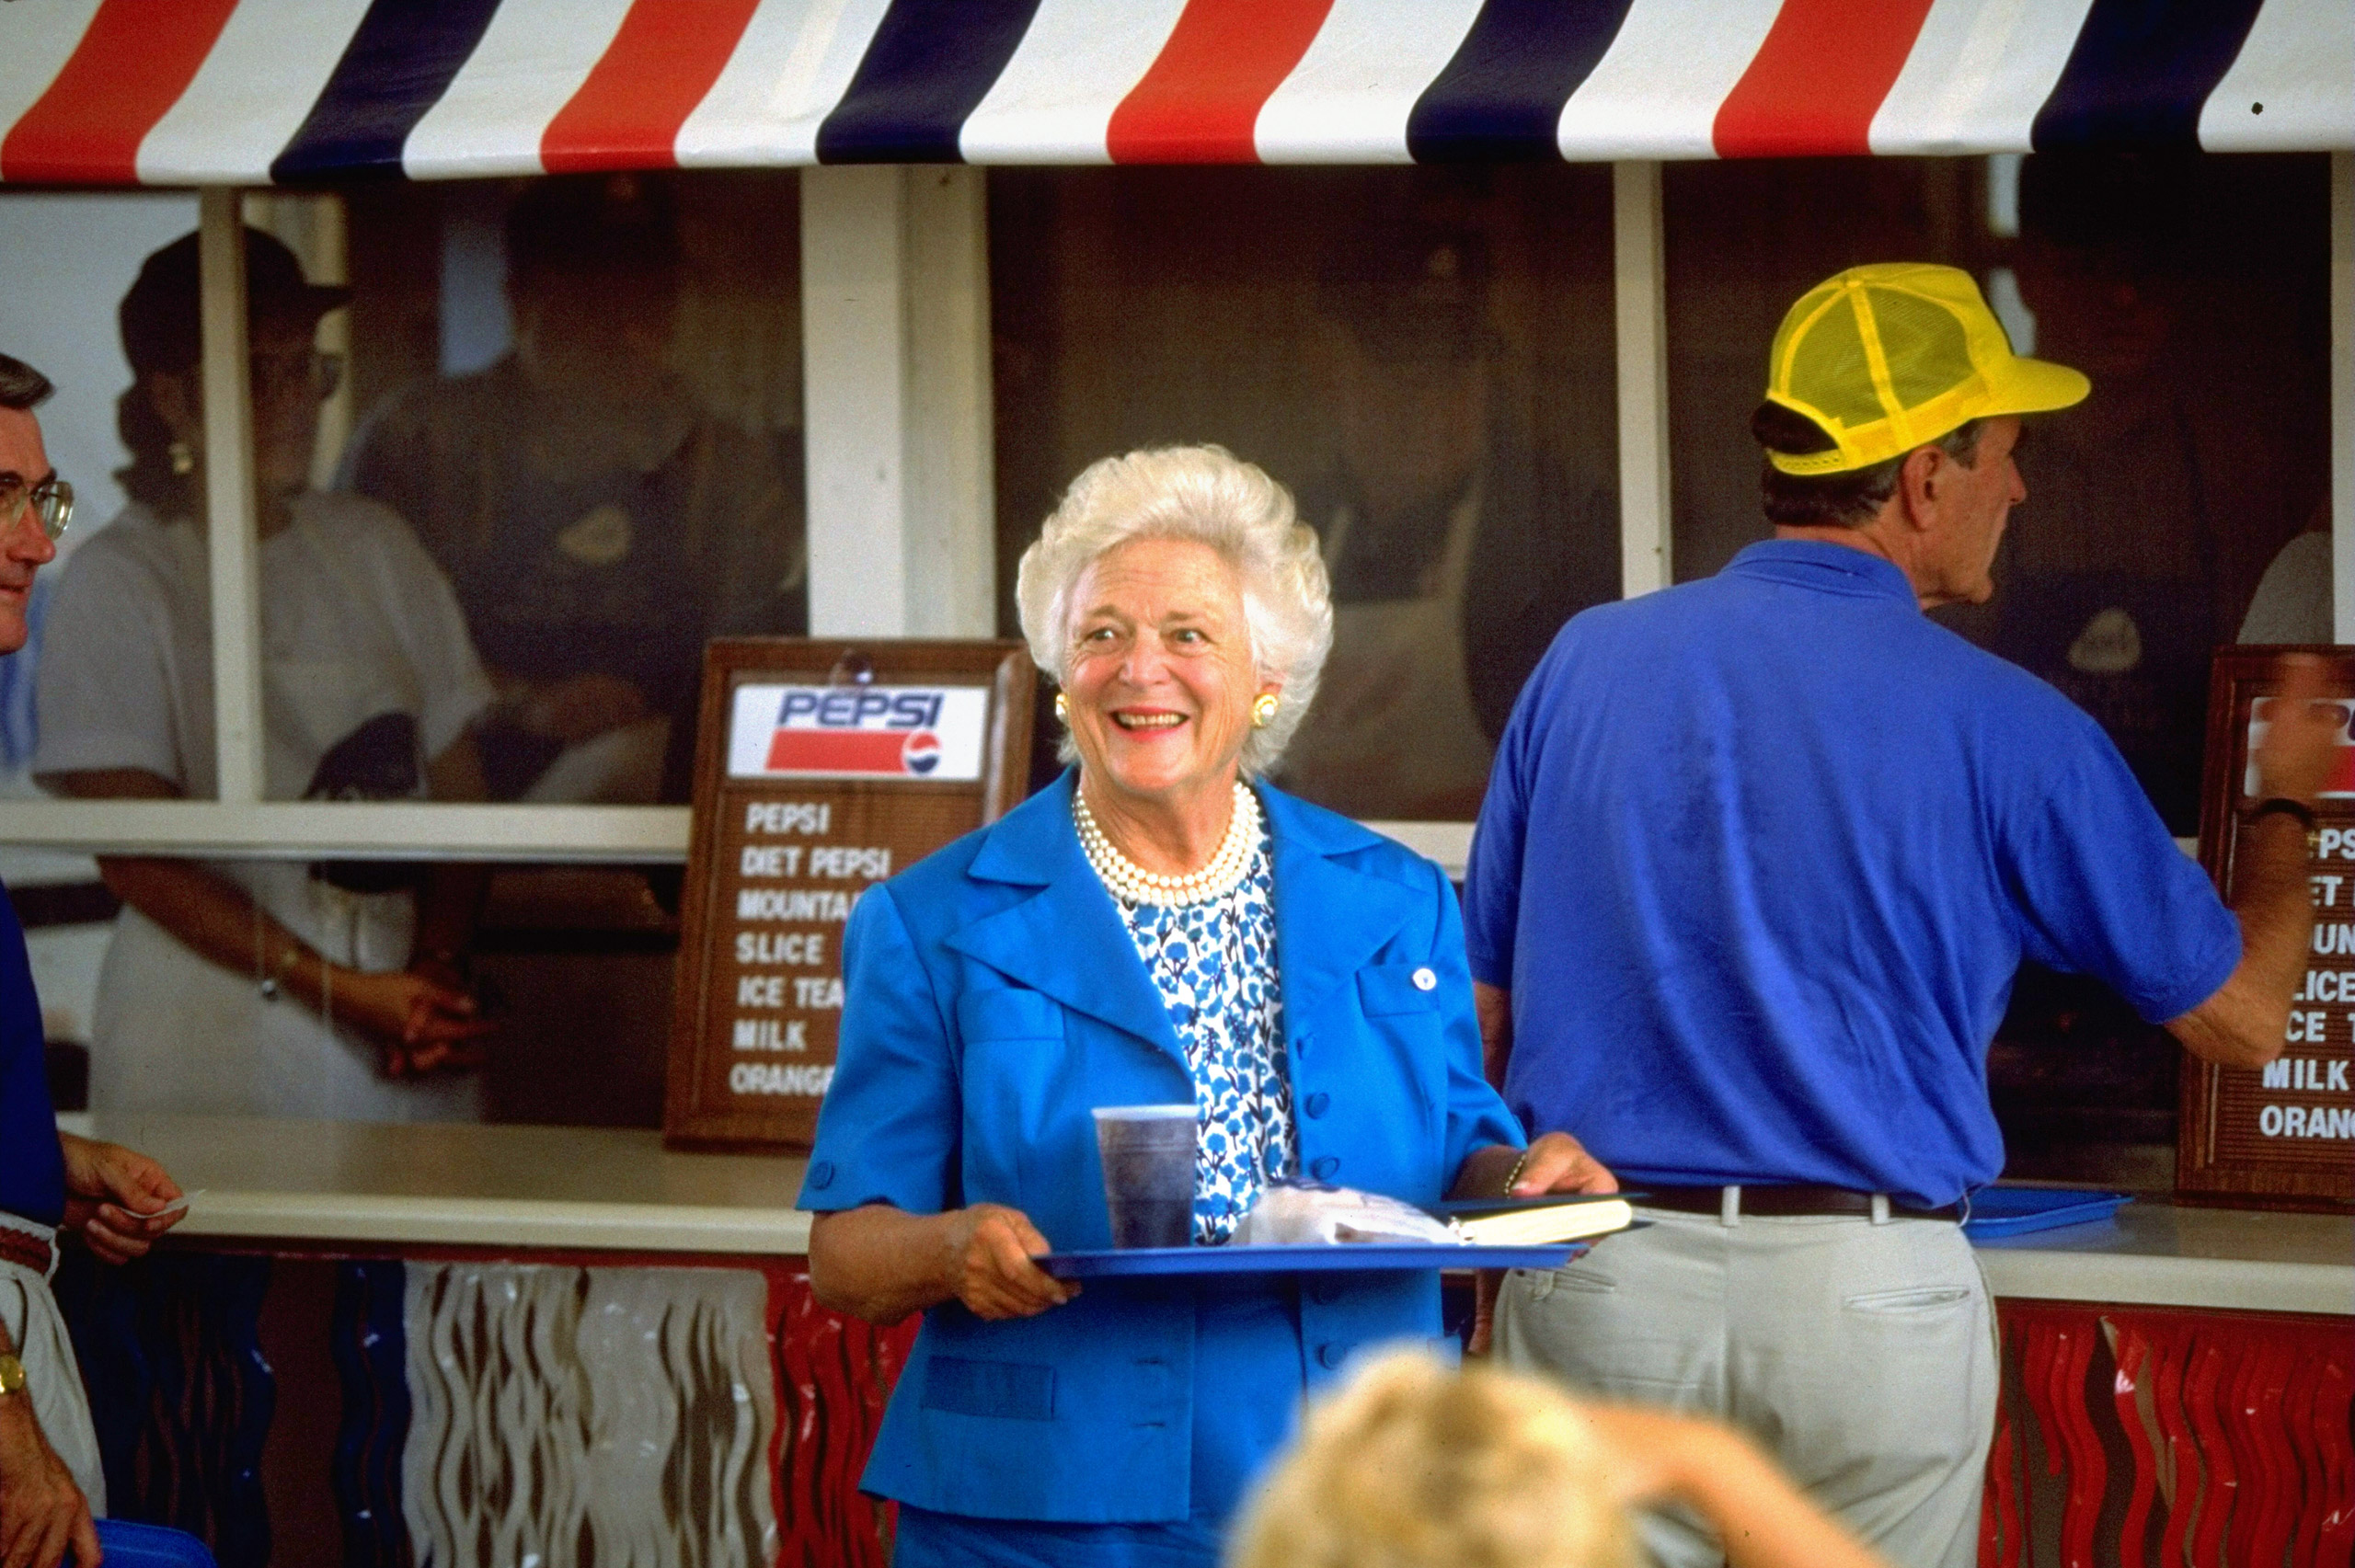 President George H.W. Bush and Barbara Bush patronizing food stand during campaign stop at state fair. Aug. 23, 1992.